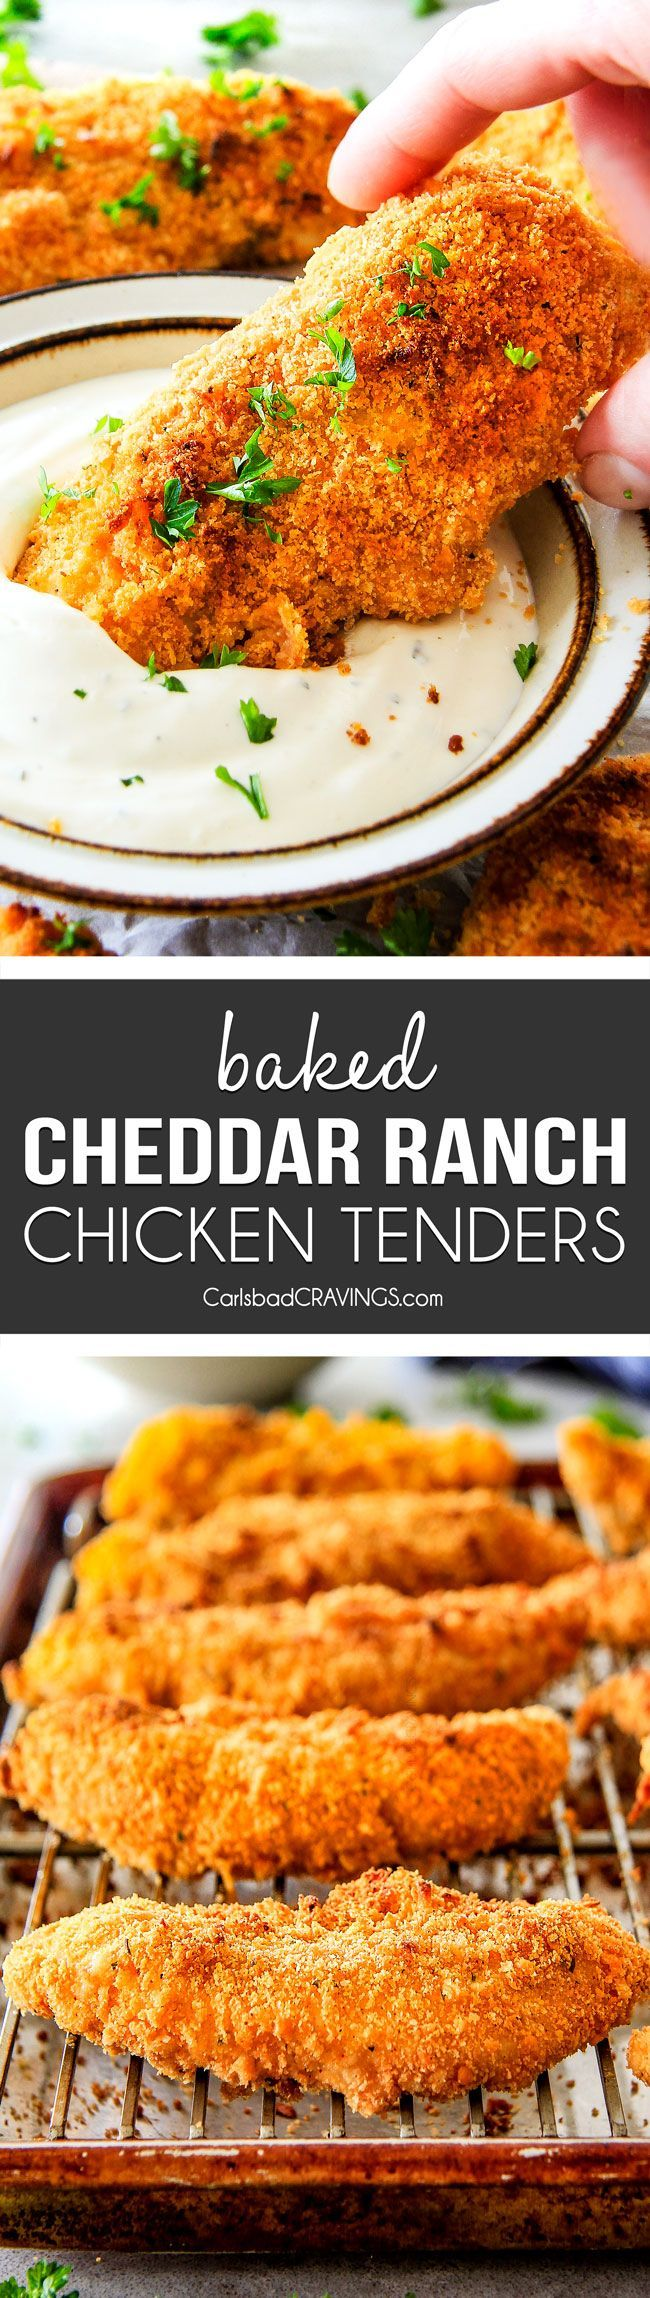 incredibly tender, juicy flavorful Baked Cheddar Ranch Chicken Tenders coated in the most AMAZING cheese cracker breading! These are pure addicting and SO EASY!#chickentenders #Ranchdressing #chickendinner  #ChickenRecipes